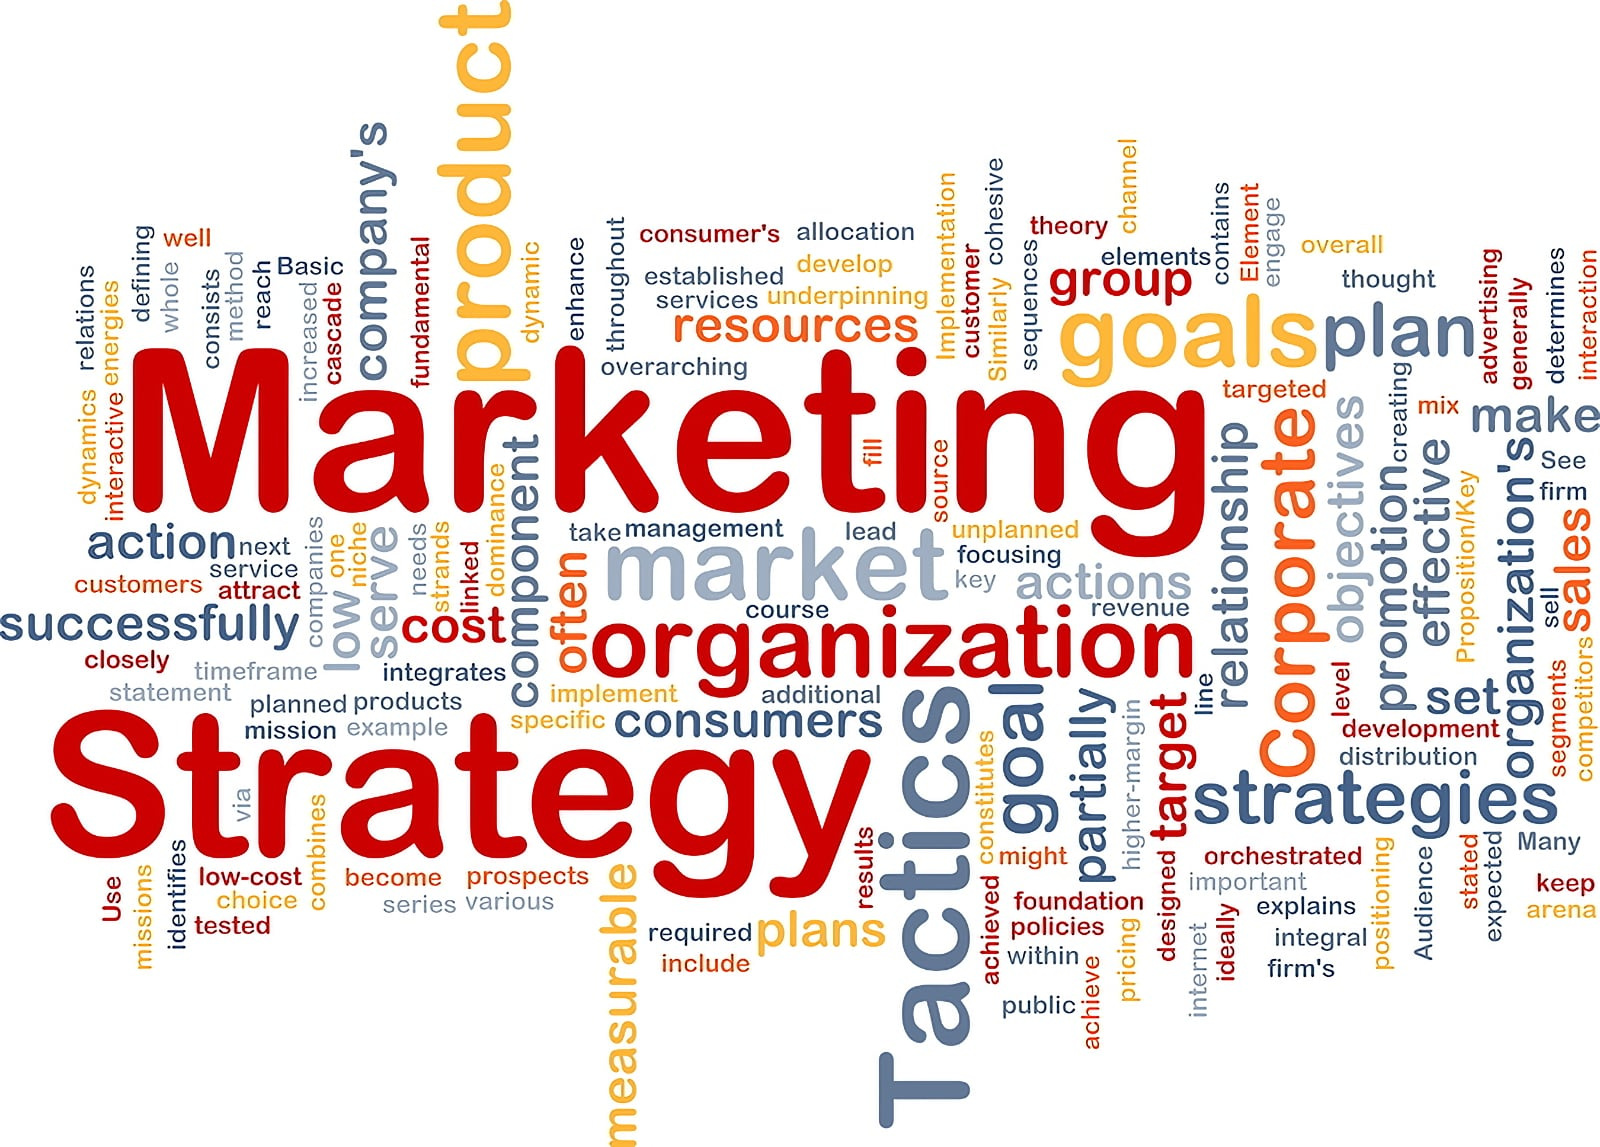 Word cloud concept image centred around the words marketing and strategy, including many related words and phrase